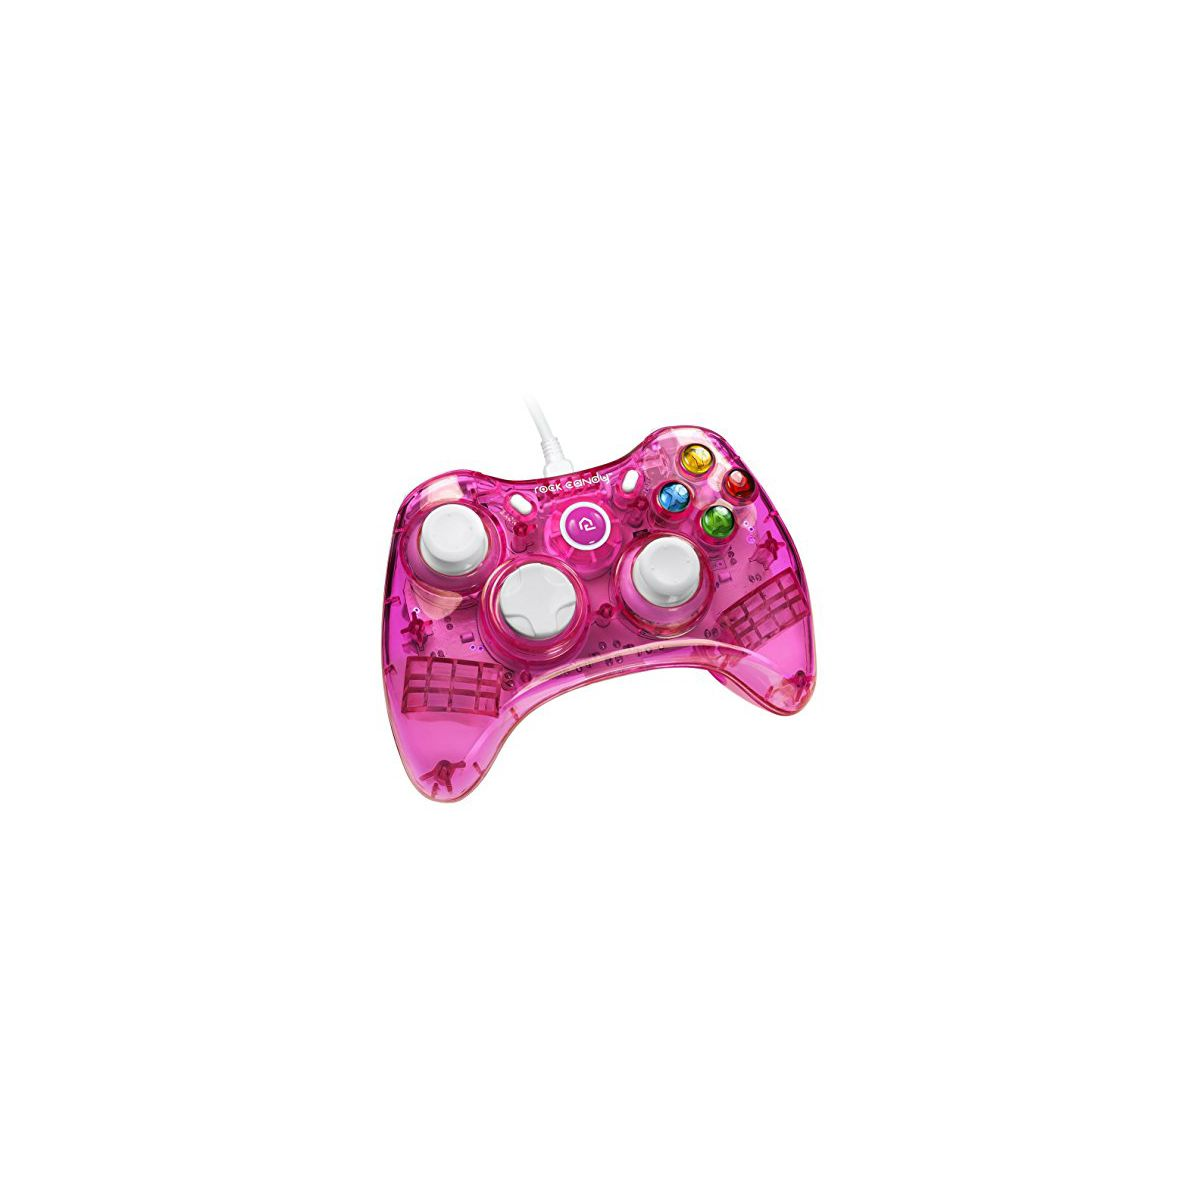 Manette PDP Rock Candy sans fil Rose pr PC/Mac